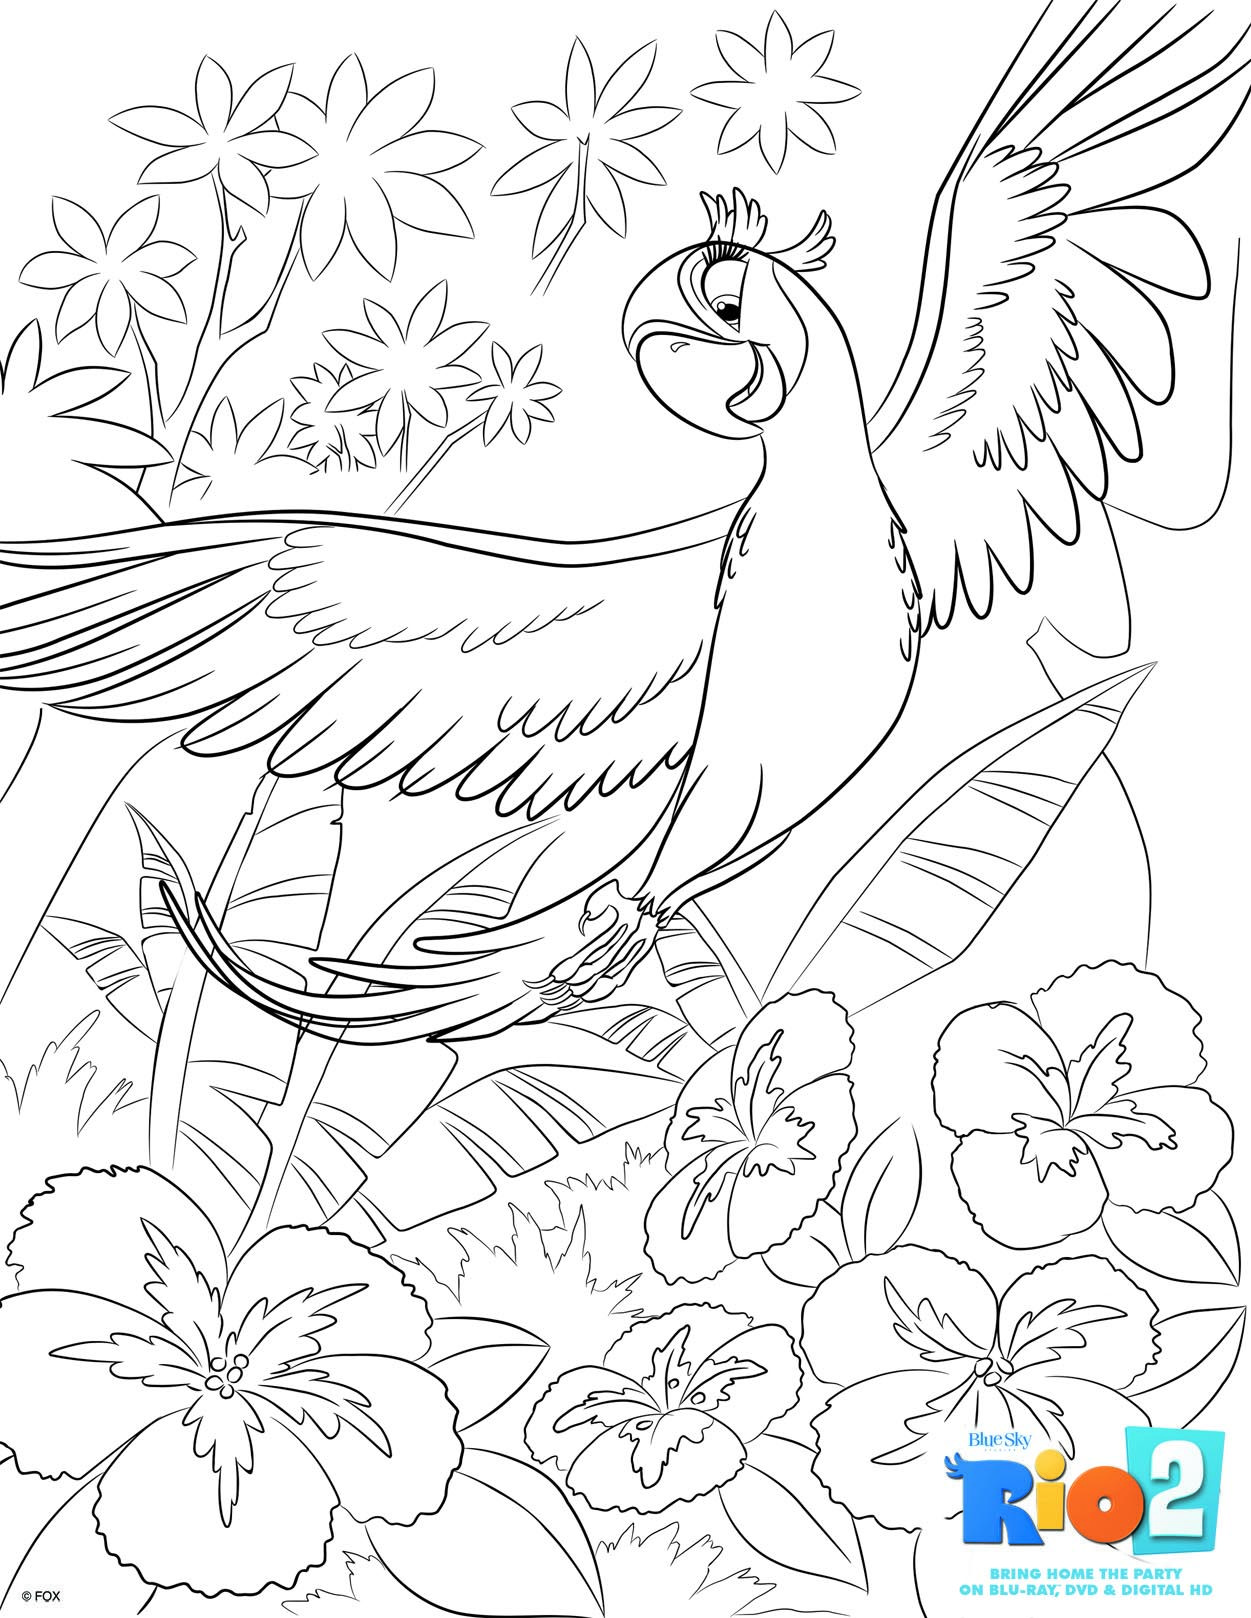 Free Rio 2 Coloring Pages Bird Coloring Pages Coloring Books Coloring Pages